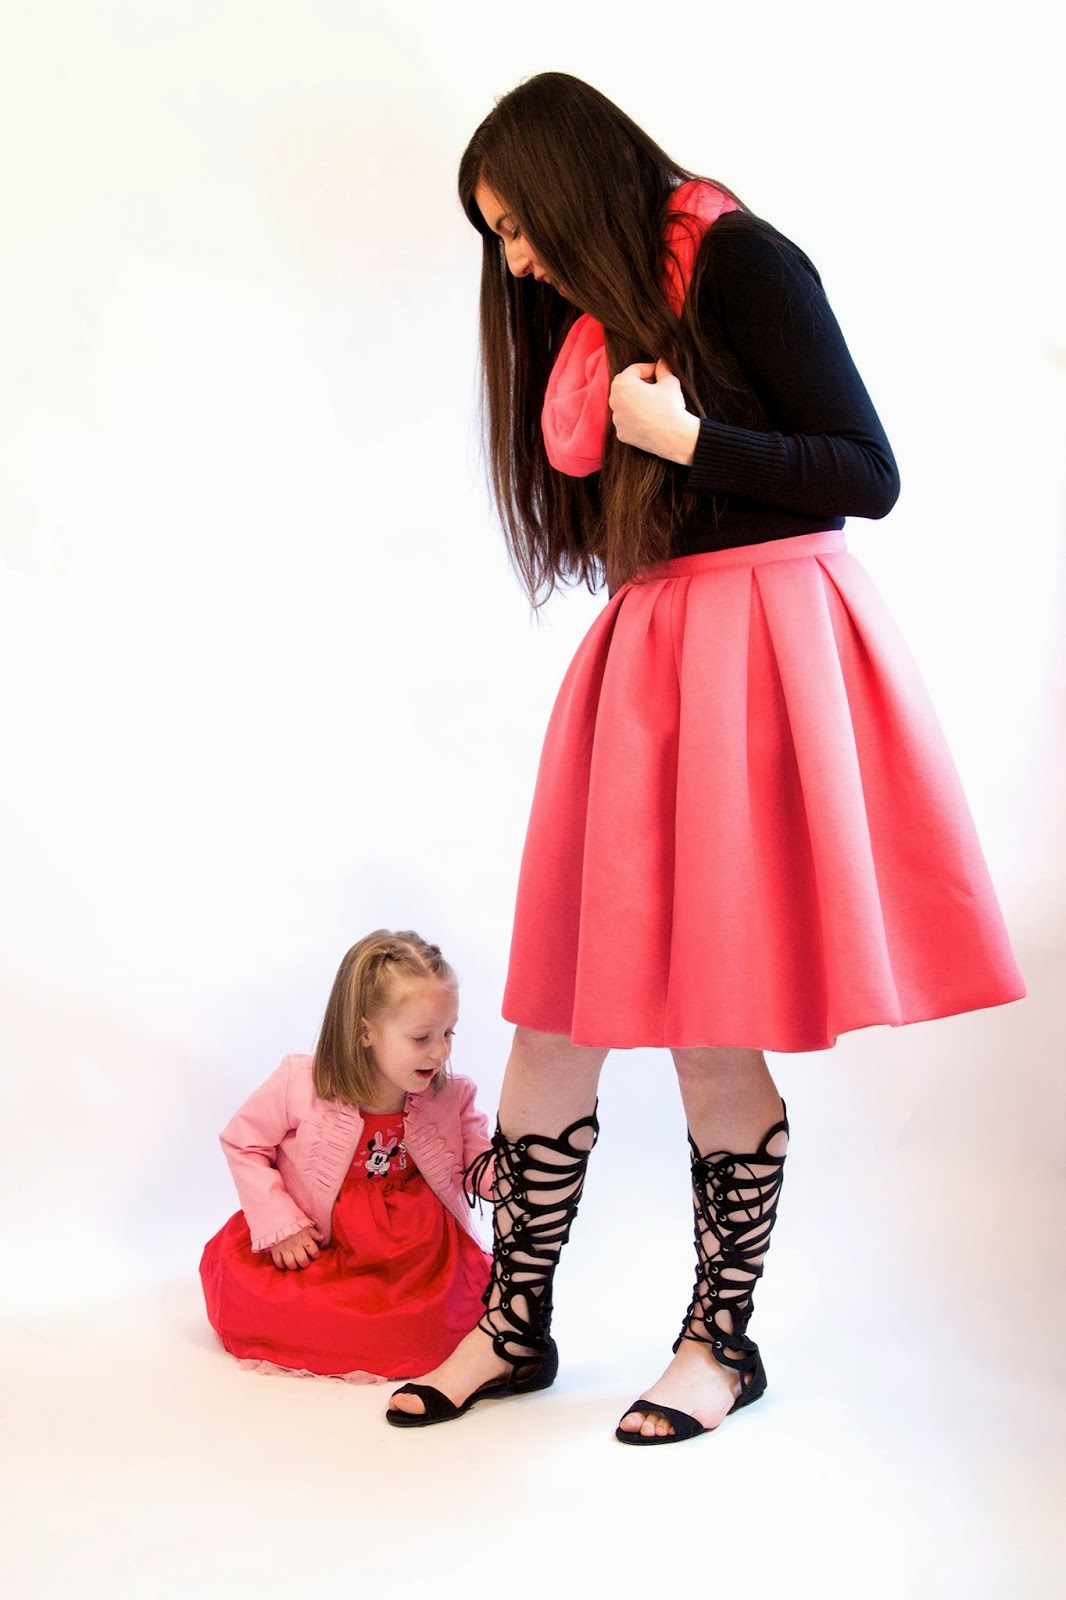 a line skirt, aline skirt, kids outfit, girls outfits, cute little girl, little girls dresses, girls dresses, asymmetrical skirt, choies, choies skirt, pink pleated skirt, pink poofy skirt, pink skirt,